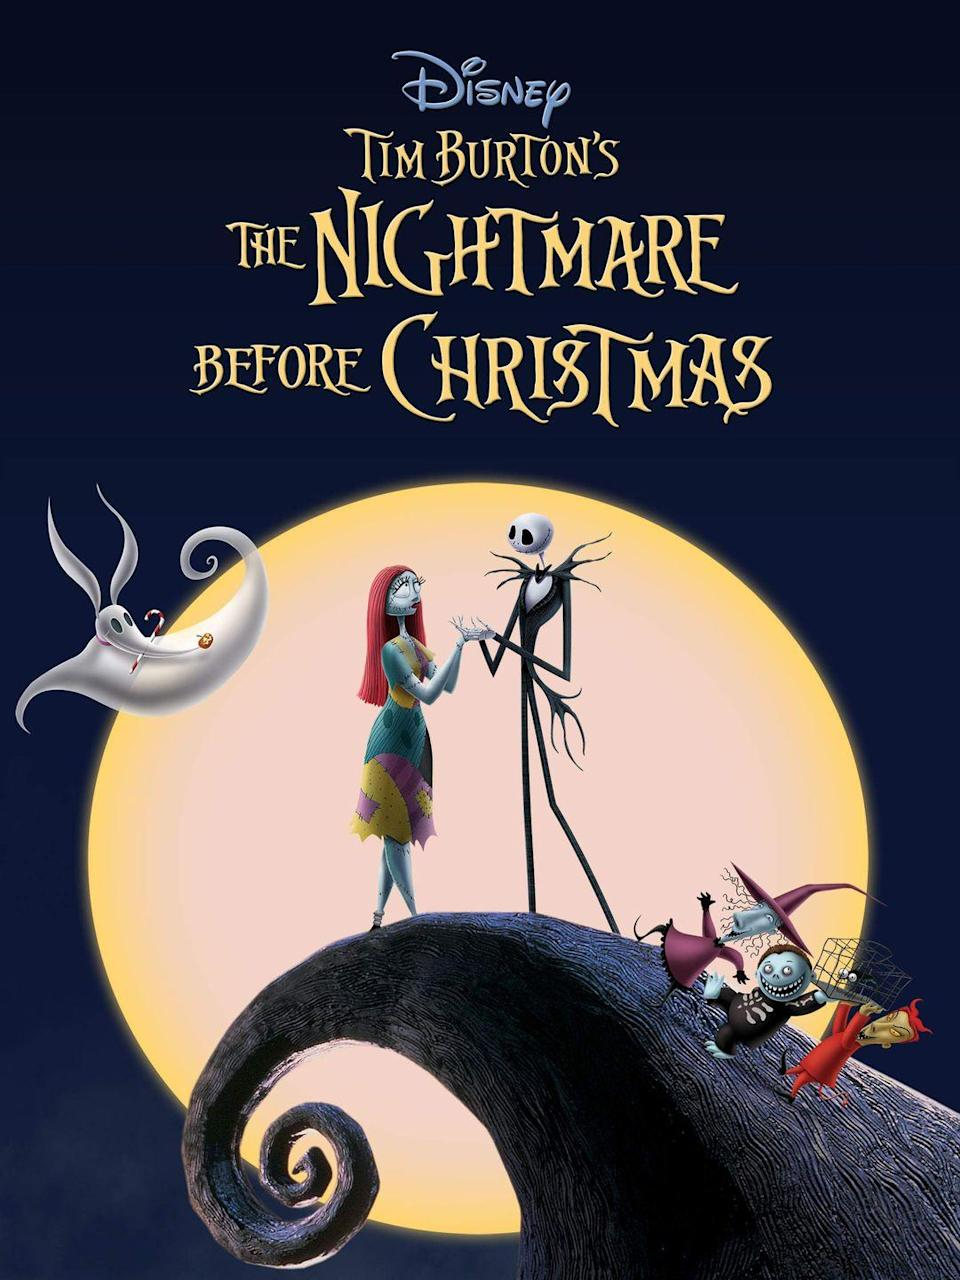 """<p>In his 1993 stop-motion film, Tim Burton blends Christmas and Halloween together in a way that's <a href=""""https://www.goodhousekeeping.com/holidays/christmas-ideas/g29994860/best-christmas-horror-movies/"""" rel=""""nofollow noopener"""" target=""""_blank"""" data-ylk=""""slk:both spooky and heartwarming all at the same time"""" class=""""link rapid-noclick-resp"""">both spooky and heartwarming all at the same time</a>.</p><p><a class=""""link rapid-noclick-resp"""" href=""""https://www.amazon.com/Tim-Burtons-Nightmare-Before-Christmas/dp/B003SI05PG/?tag=syn-yahoo-20&ascsubtag=%5Bartid%7C10055.g.1315%5Bsrc%7Cyahoo-us"""" rel=""""nofollow noopener"""" target=""""_blank"""" data-ylk=""""slk:WATCH NOW"""">WATCH NOW</a></p>"""